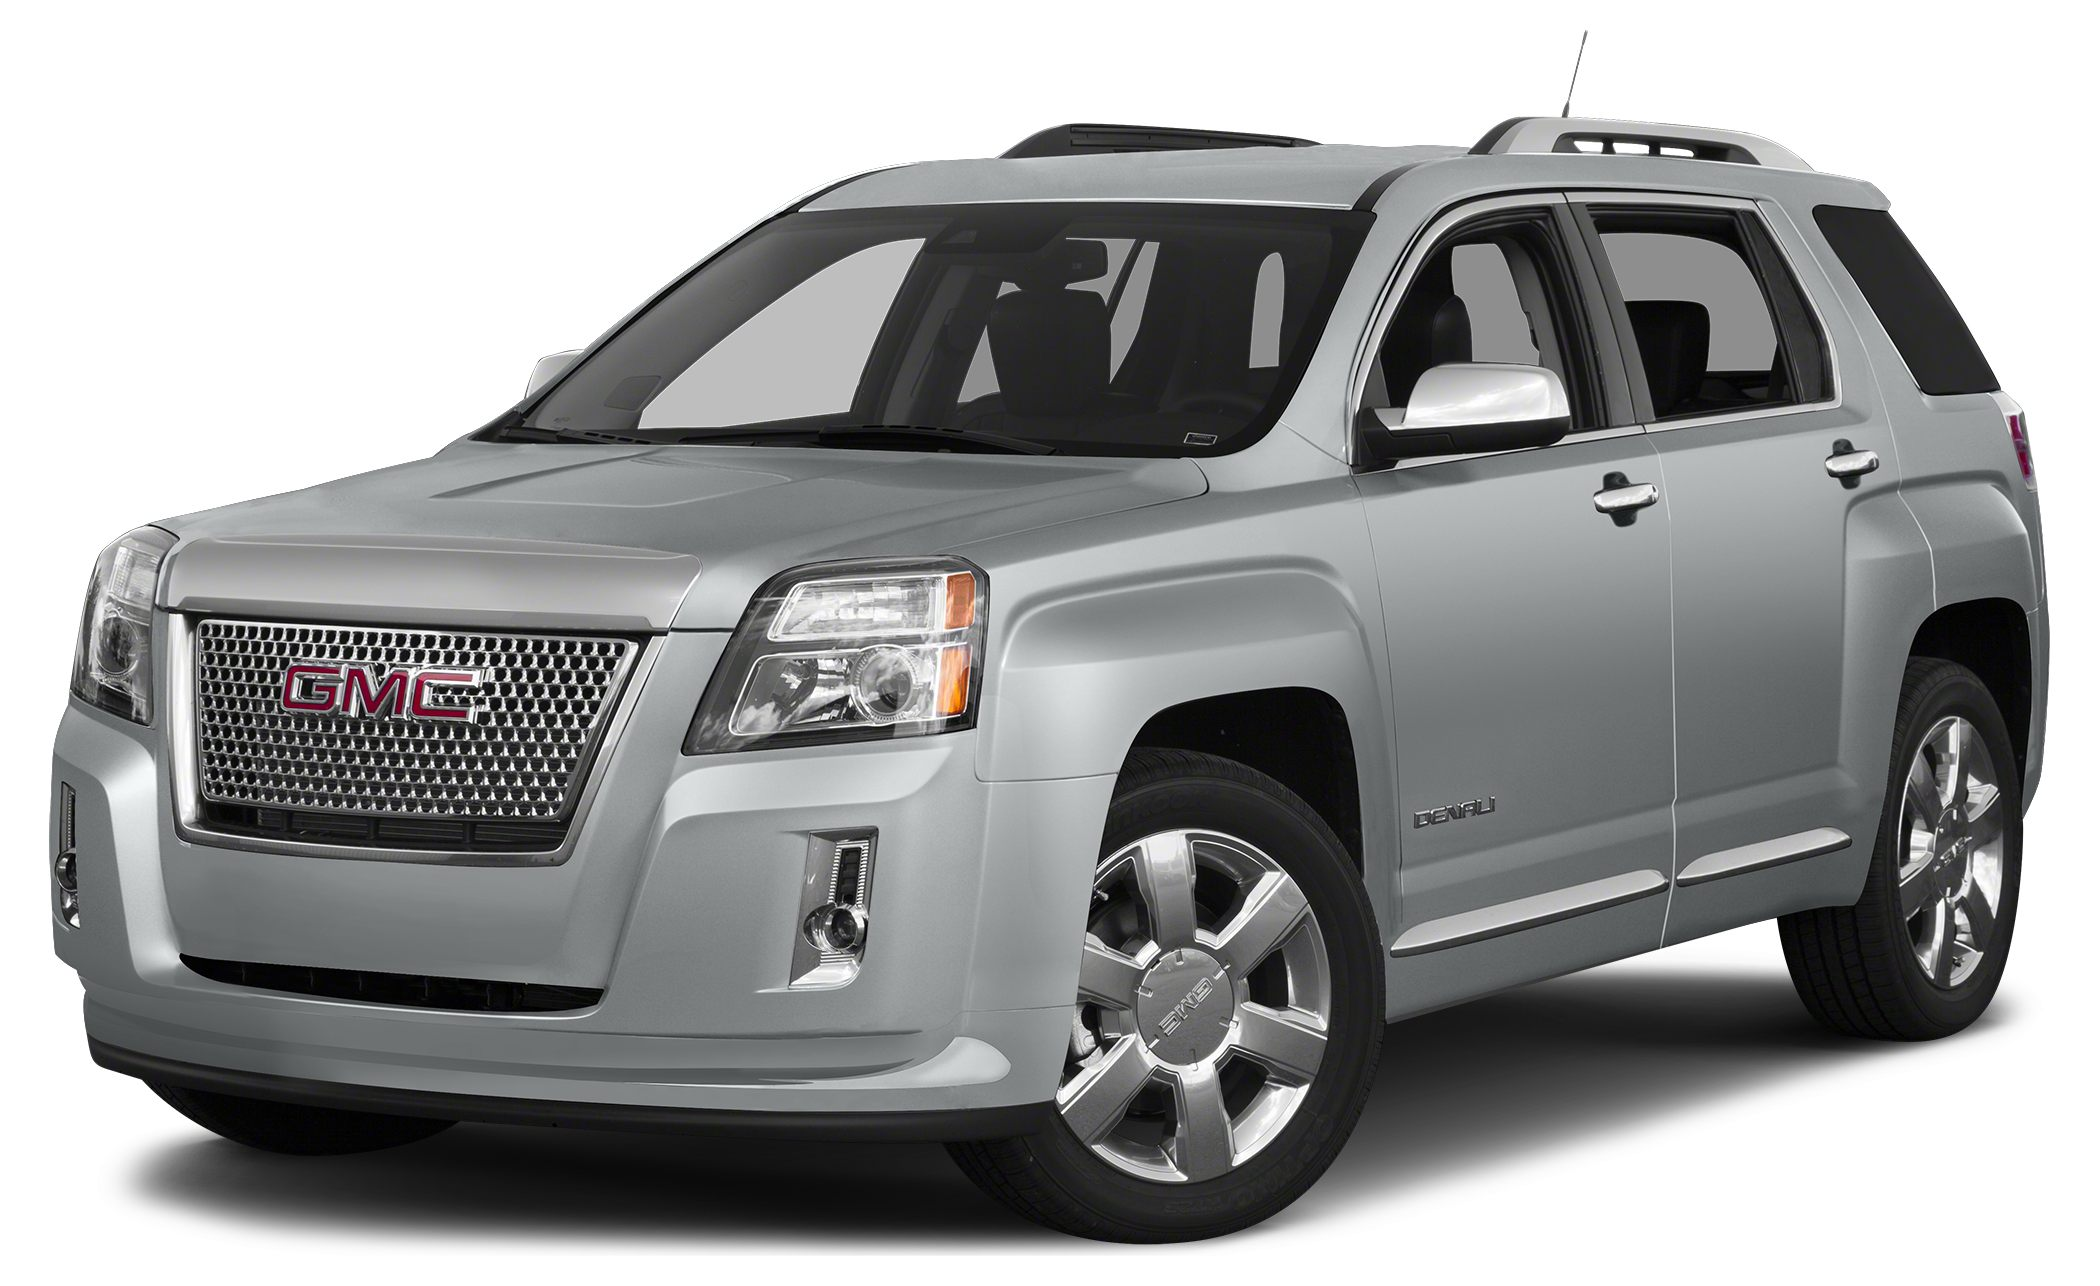 2015 GMC Terrain Denali 26995 UNDER OUR COST NOW 27777 HUGE PRICE DROP NO HASSLE OR HAGGL